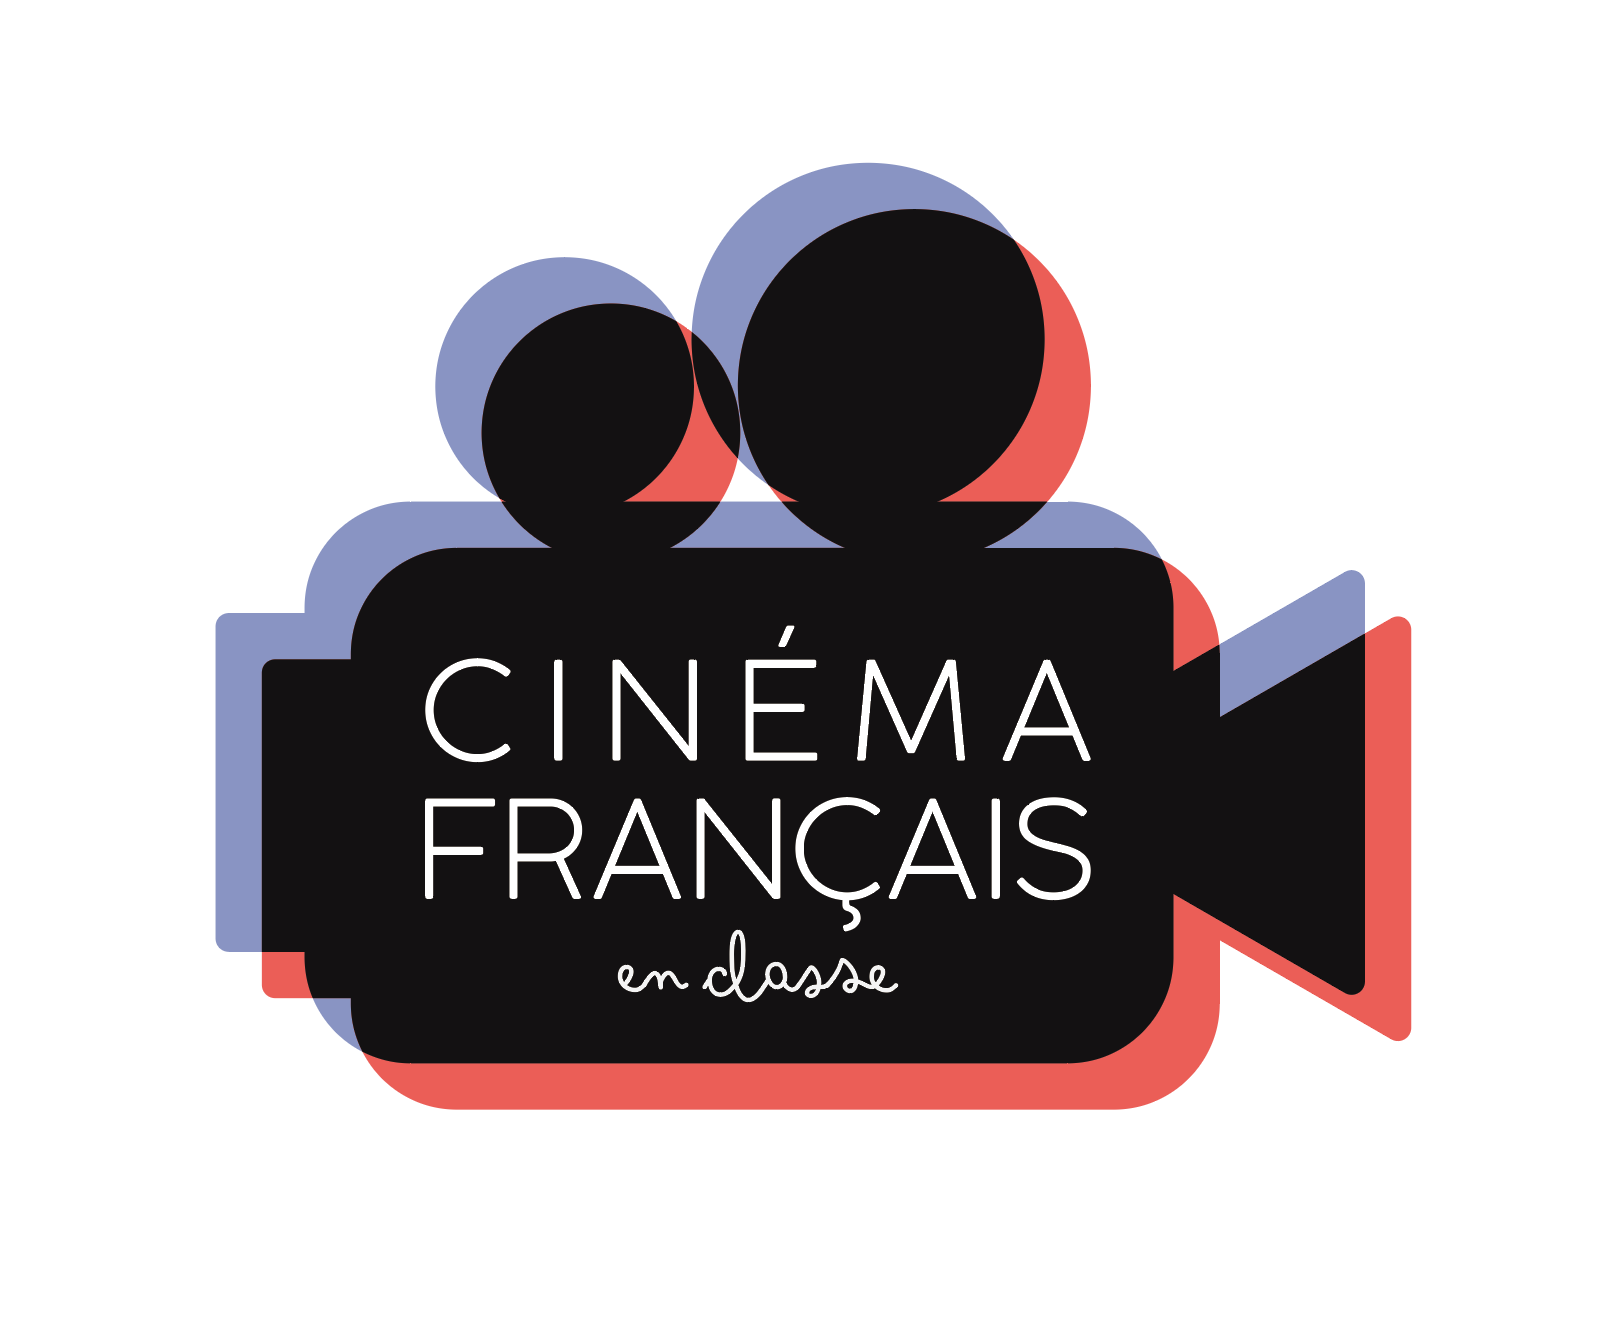 idea logo_Cinema francese